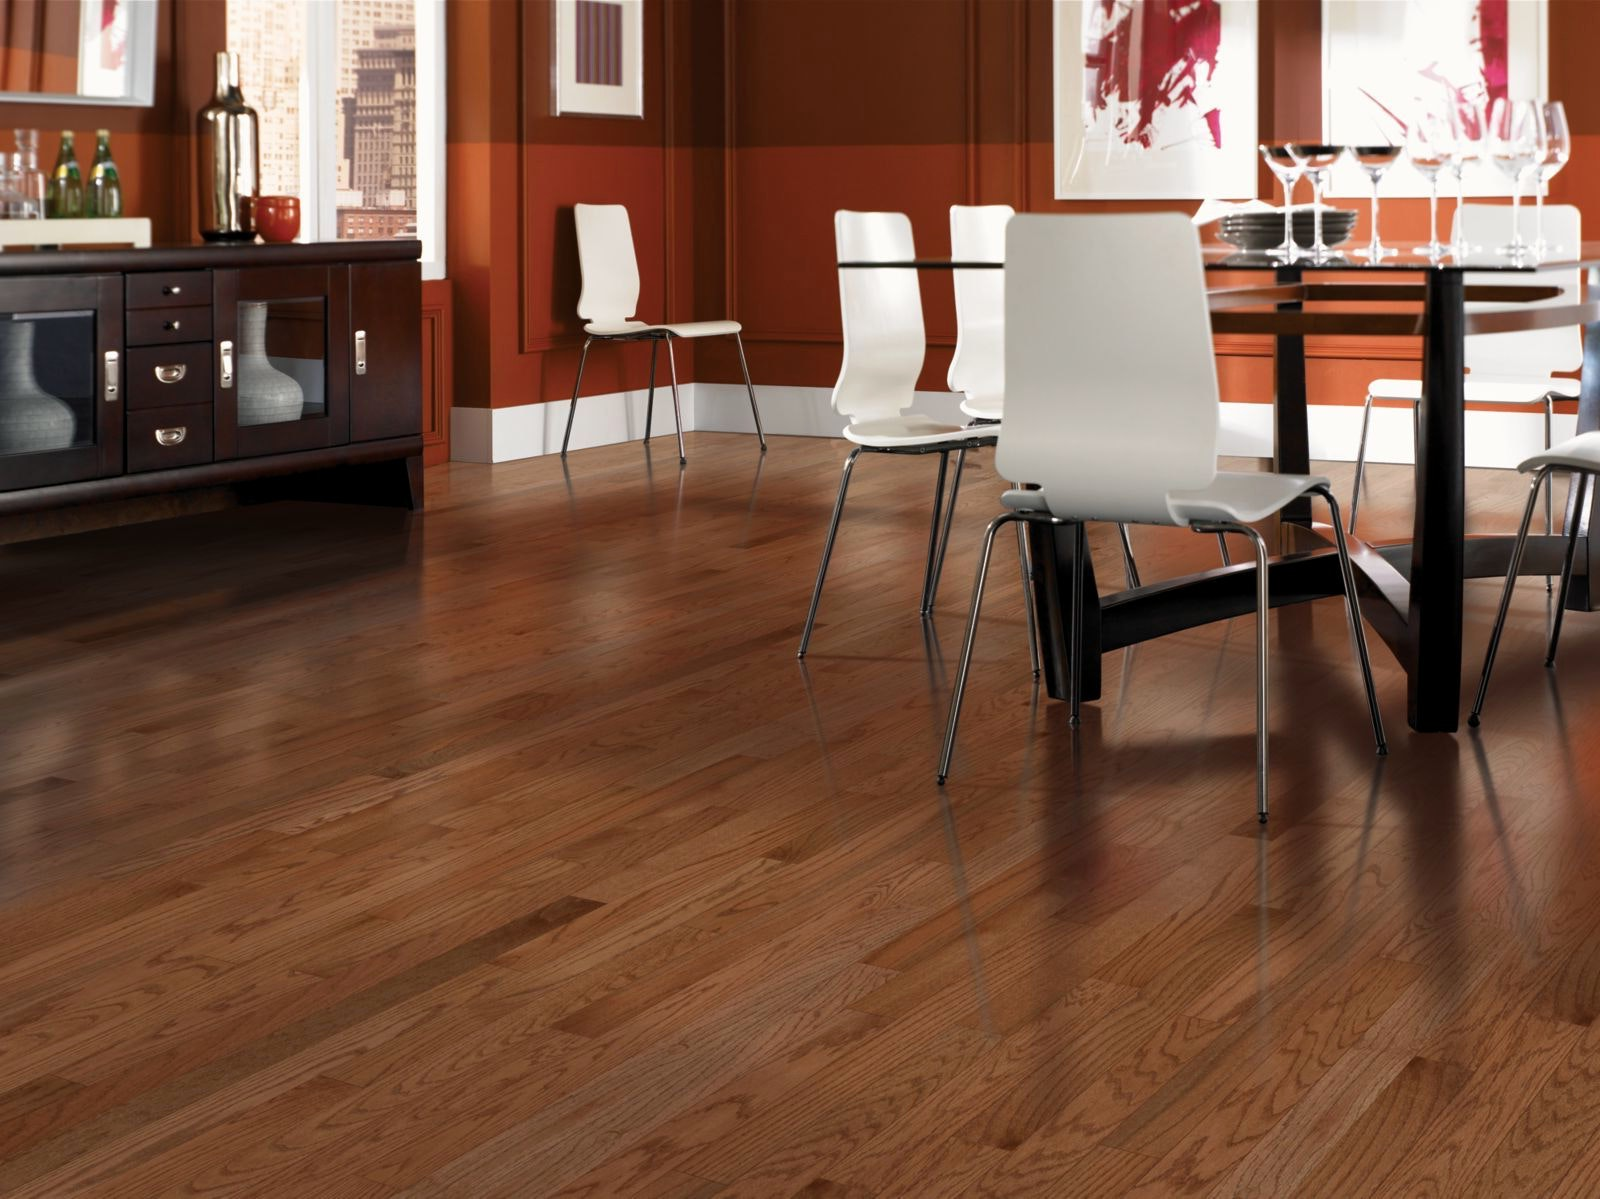 Mohawk Engineered Wood Flooring Reviews Prices